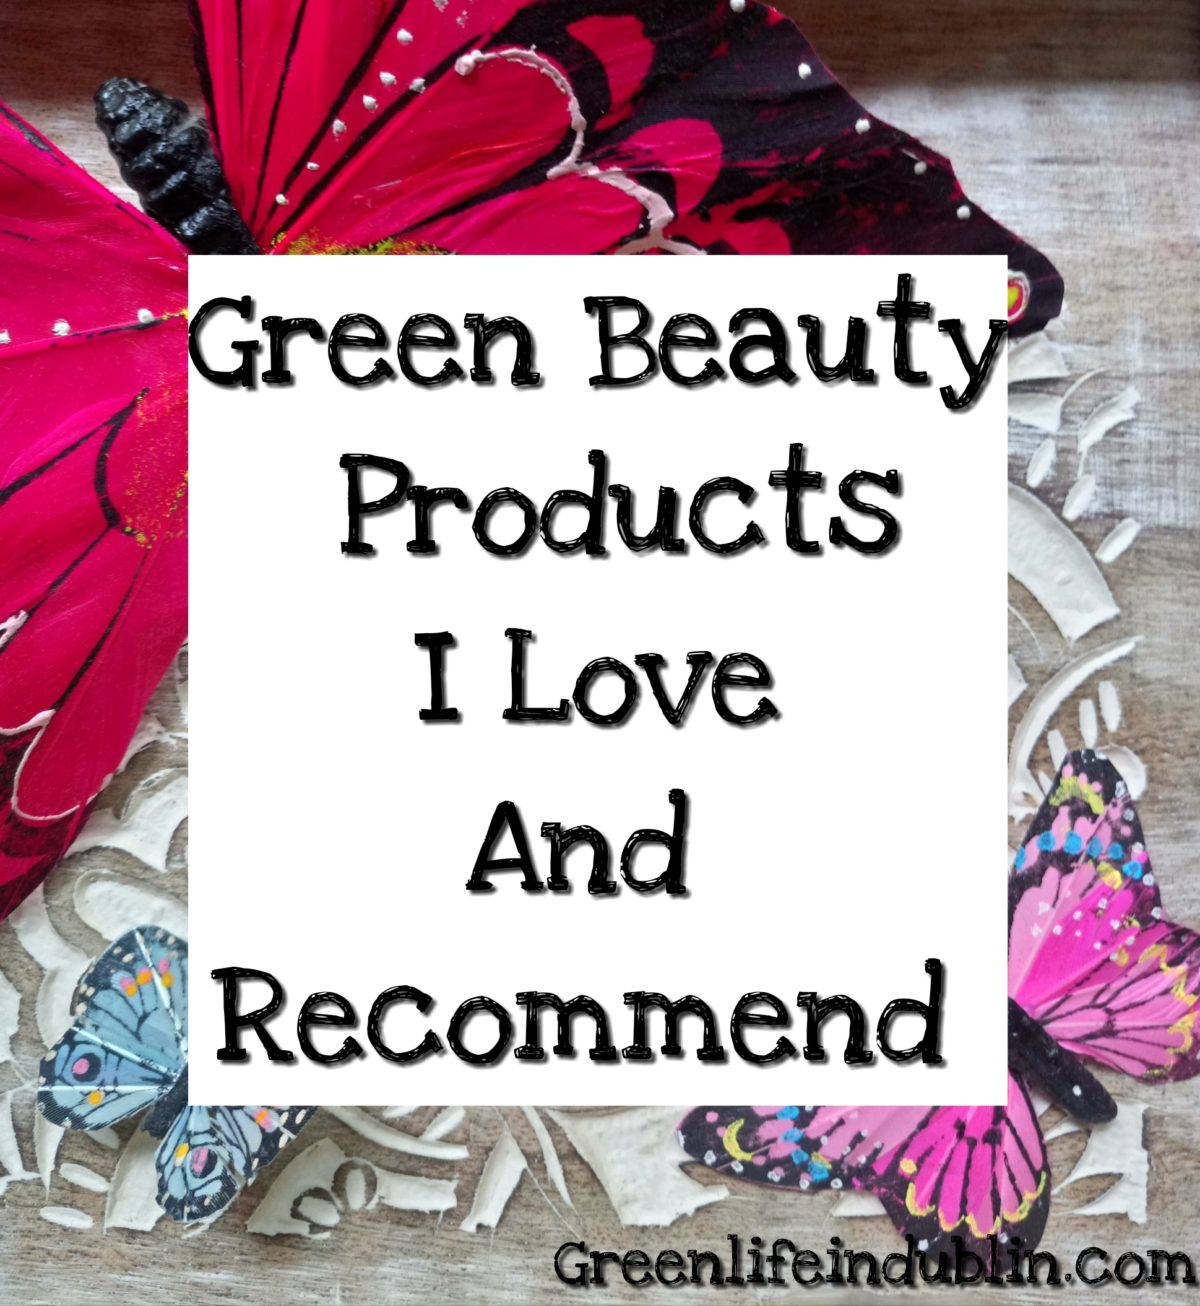 My Favourite Green Beauty Products